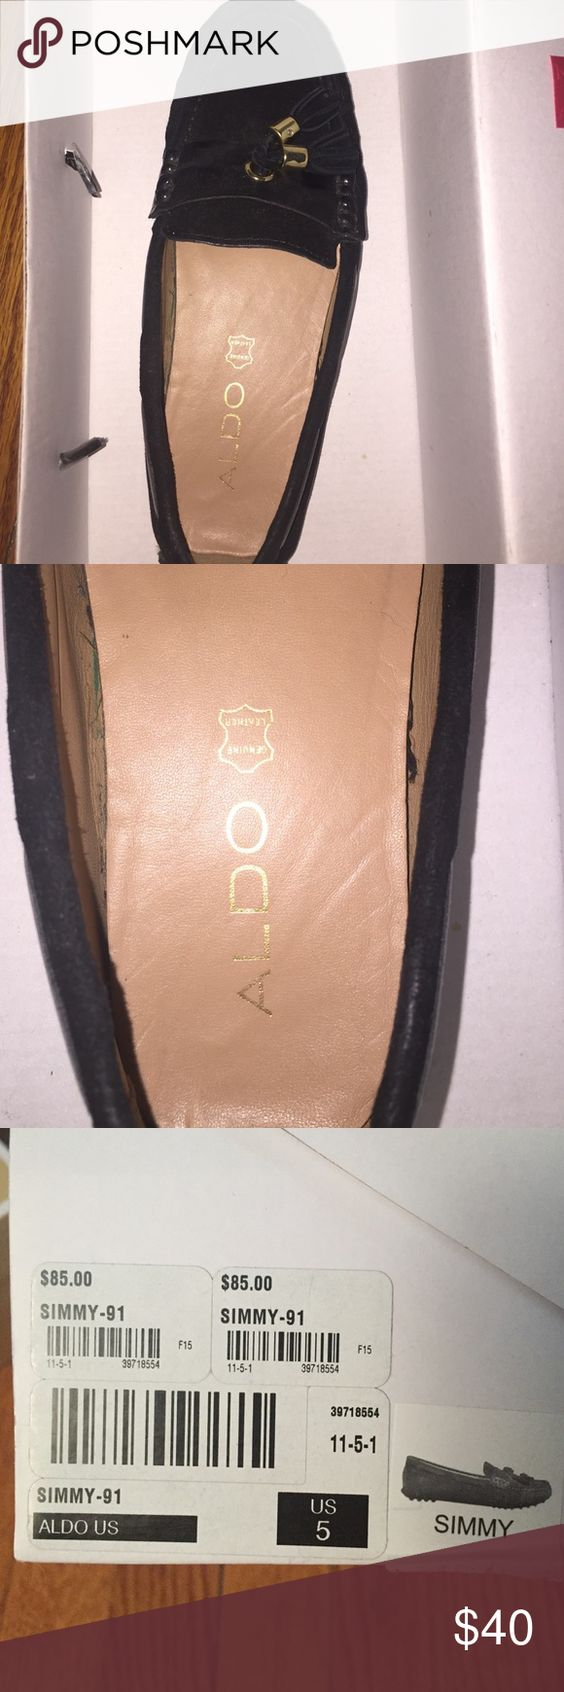 Aldo Loafers Worn a couple of times. Still in good condition!!! Great to wear with nice casual clothes even for a night out. Very stylish! Aldo Shoes Flats & Loafers